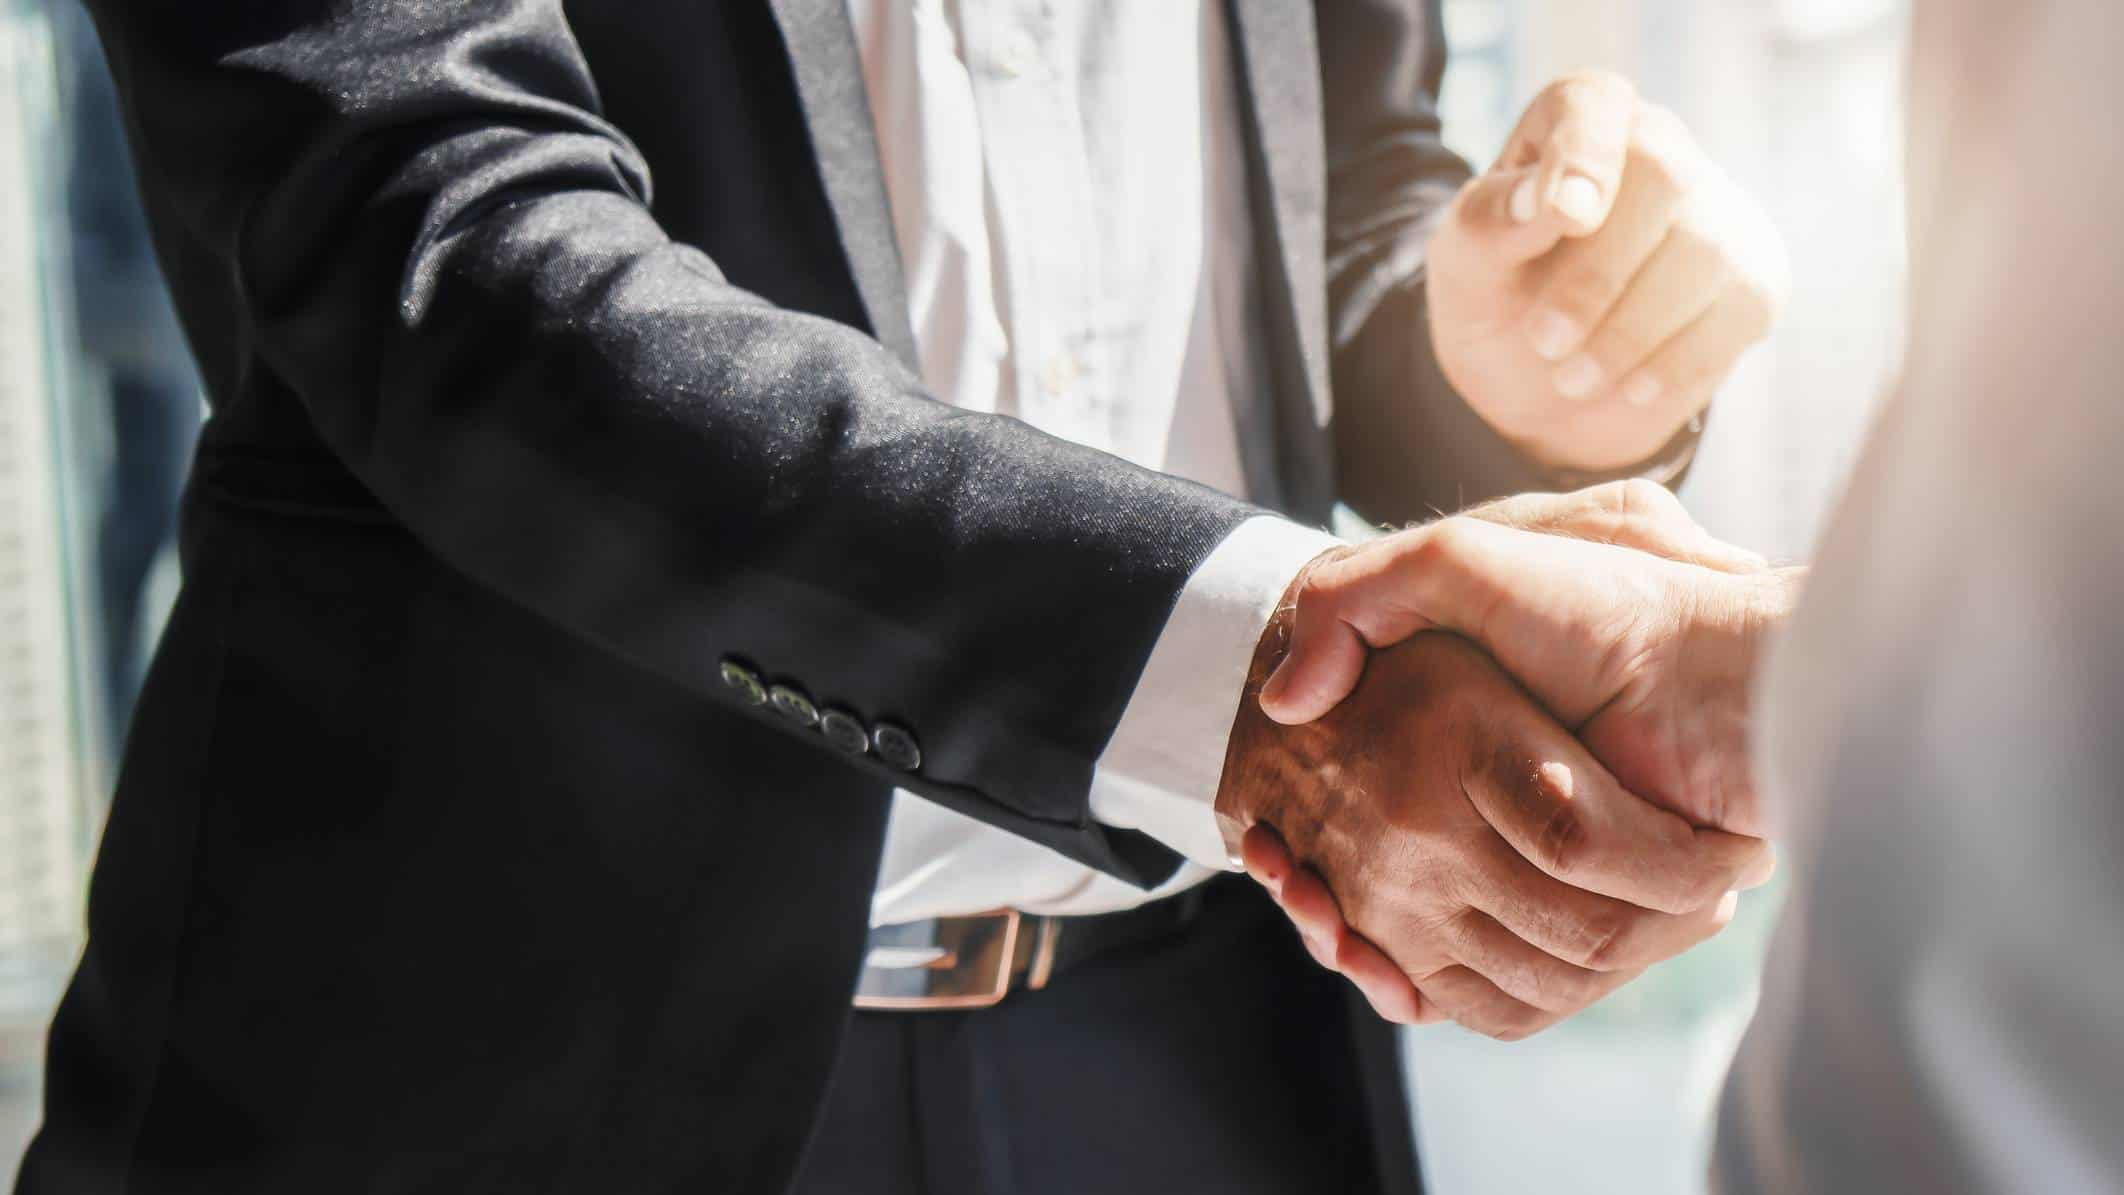 2 businessmen shaking hands, indicating a partnership deal and share price lift